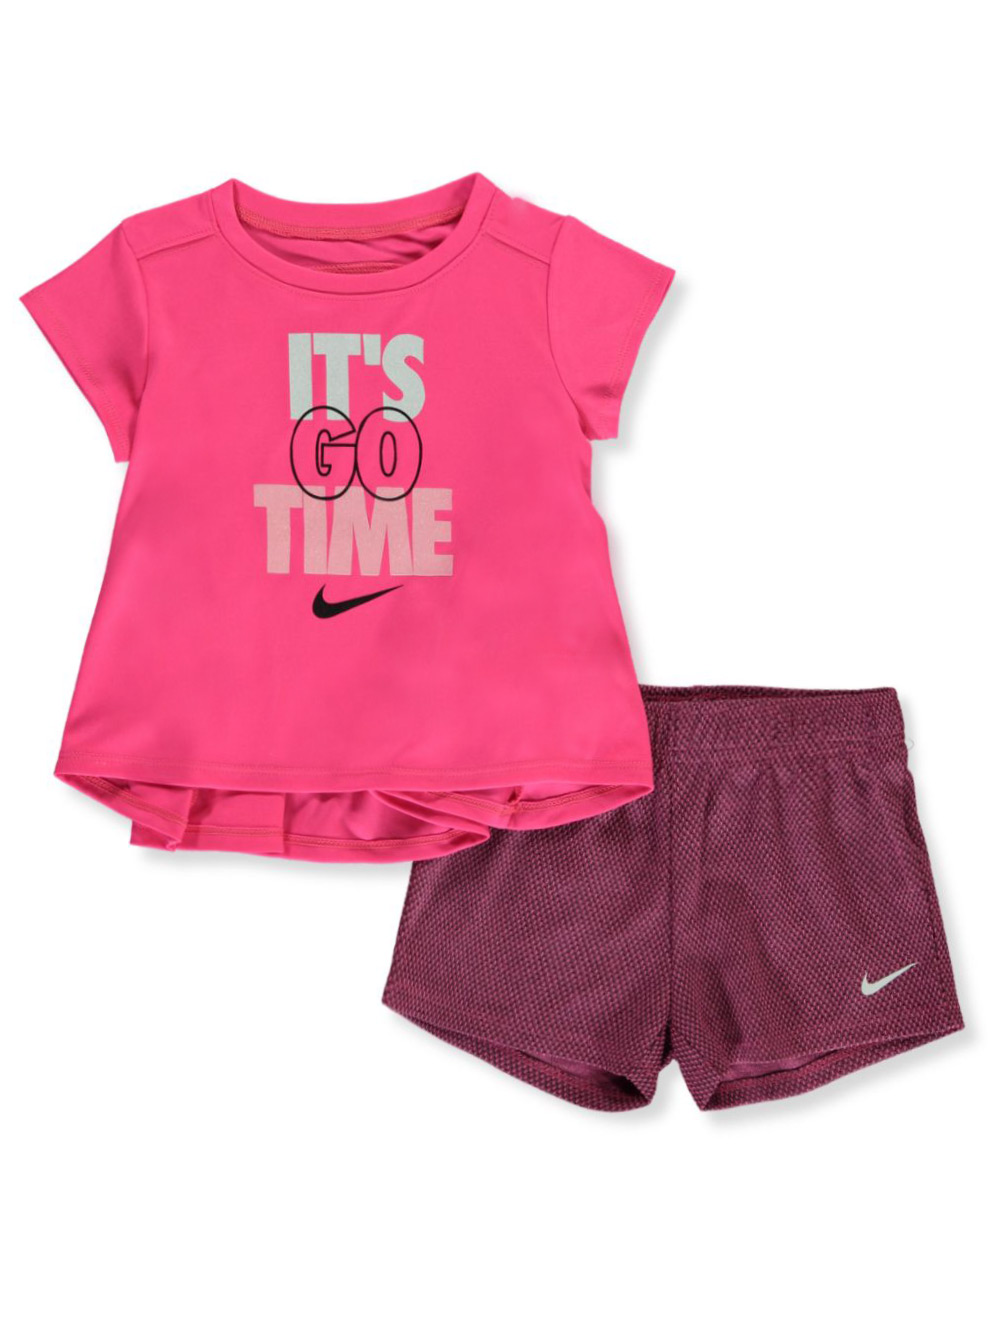 Baby Girls' 2-Piece Shorts Set Outfit